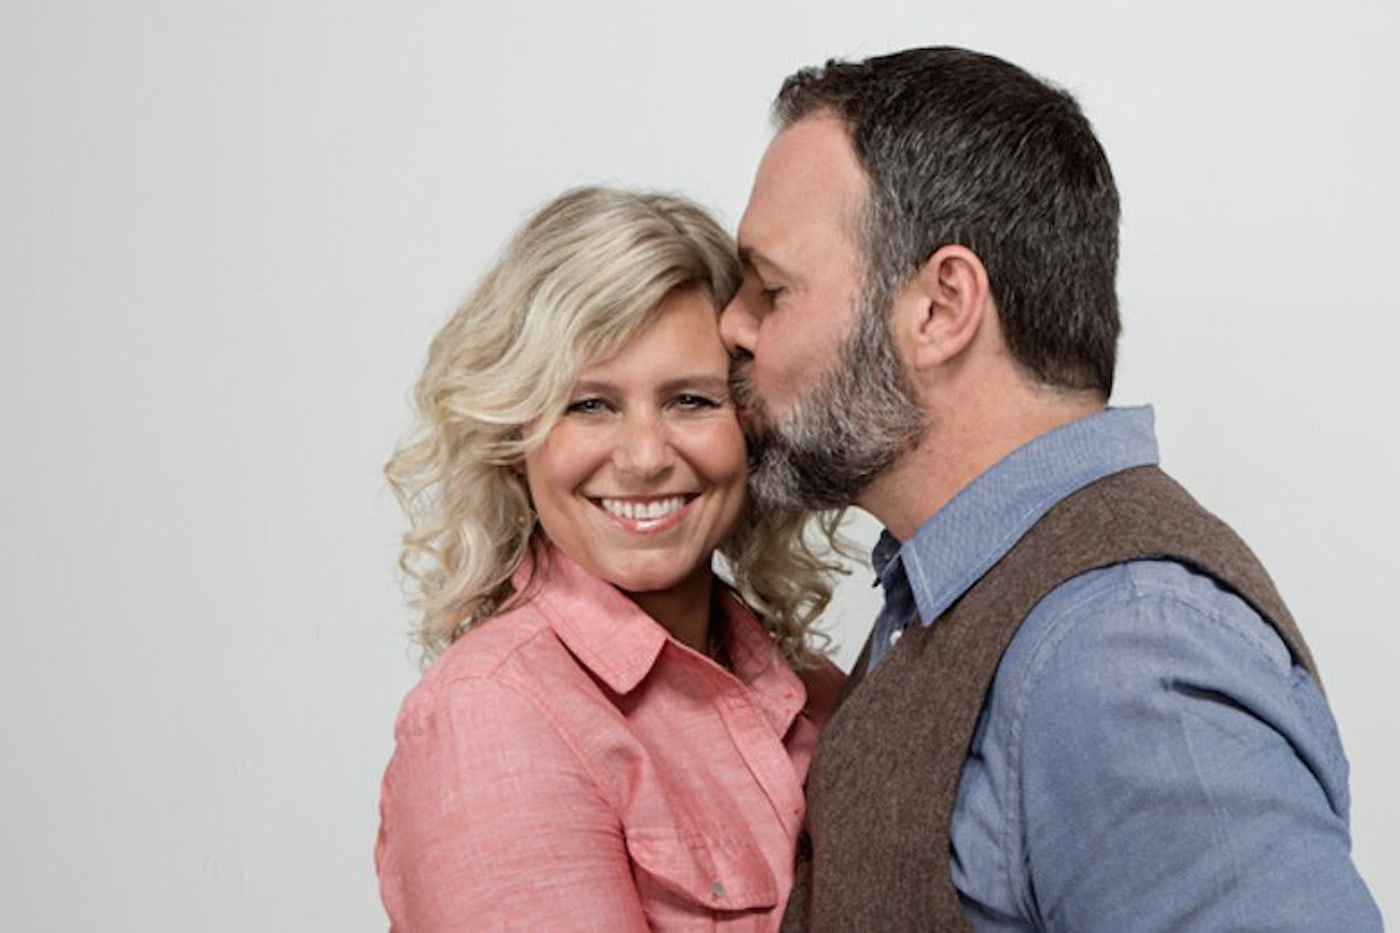 Controversy pastor mark driscoll A gifted